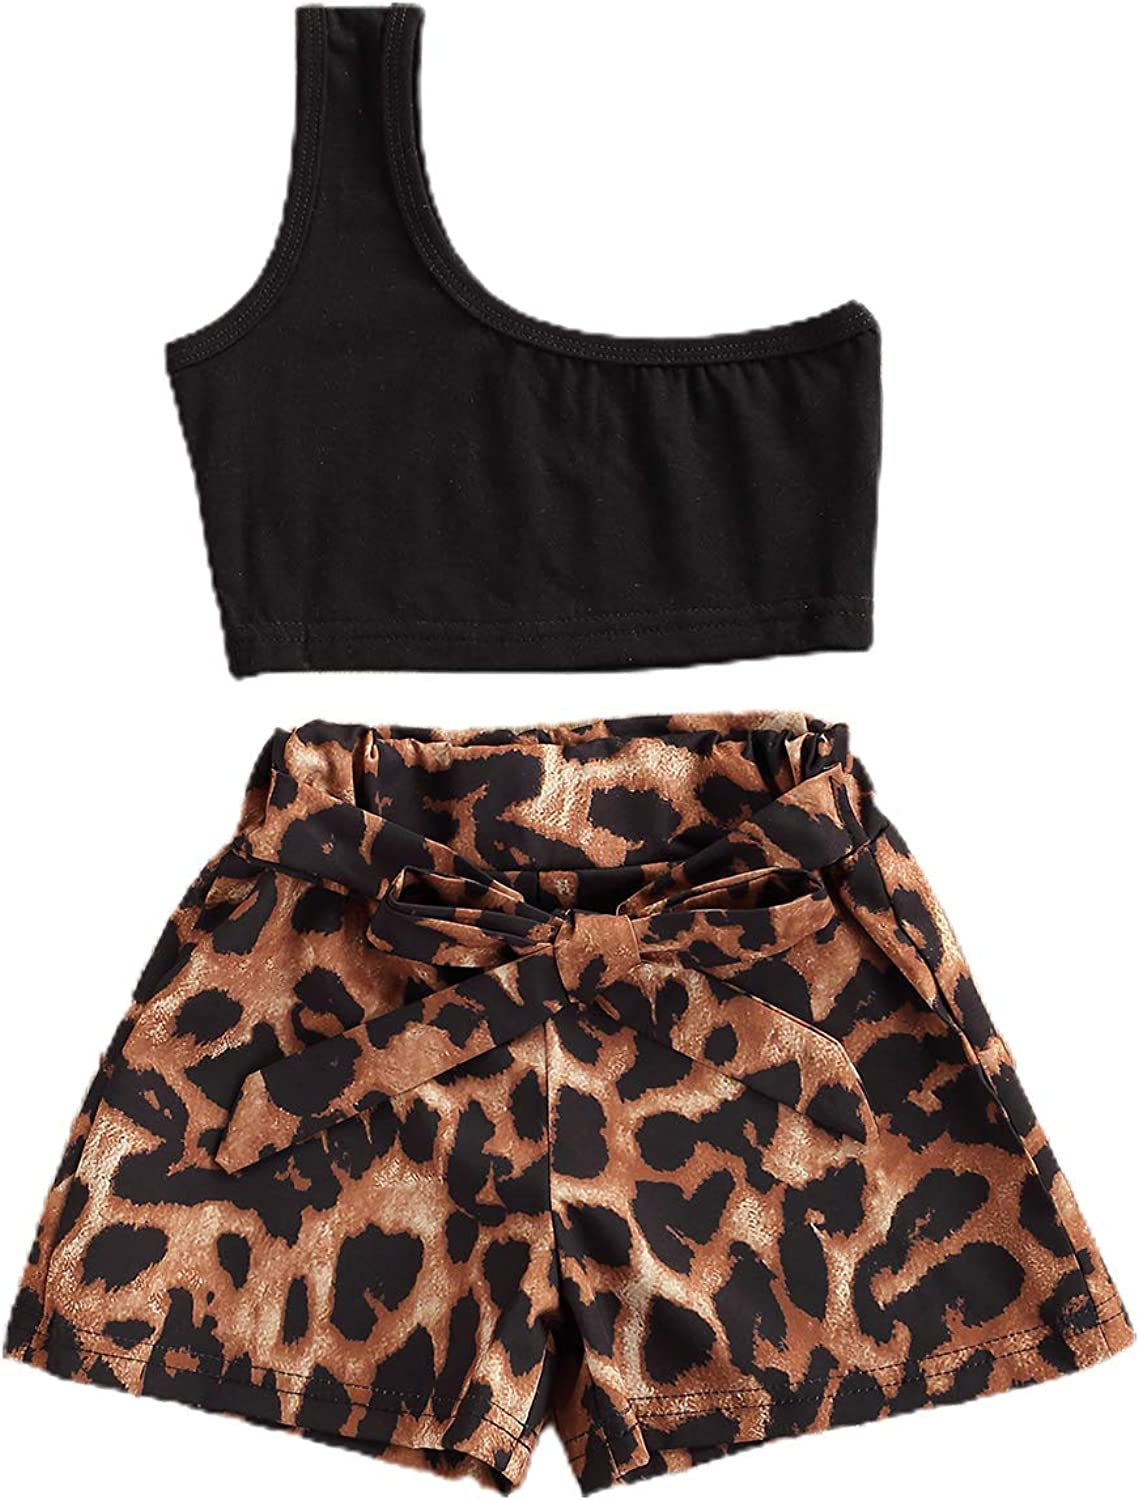 Toddler Baby Girls Summer Clothes One Shoulder Sleeveless Crop Tops Leopard Shorts 2 Piece Outfits Set